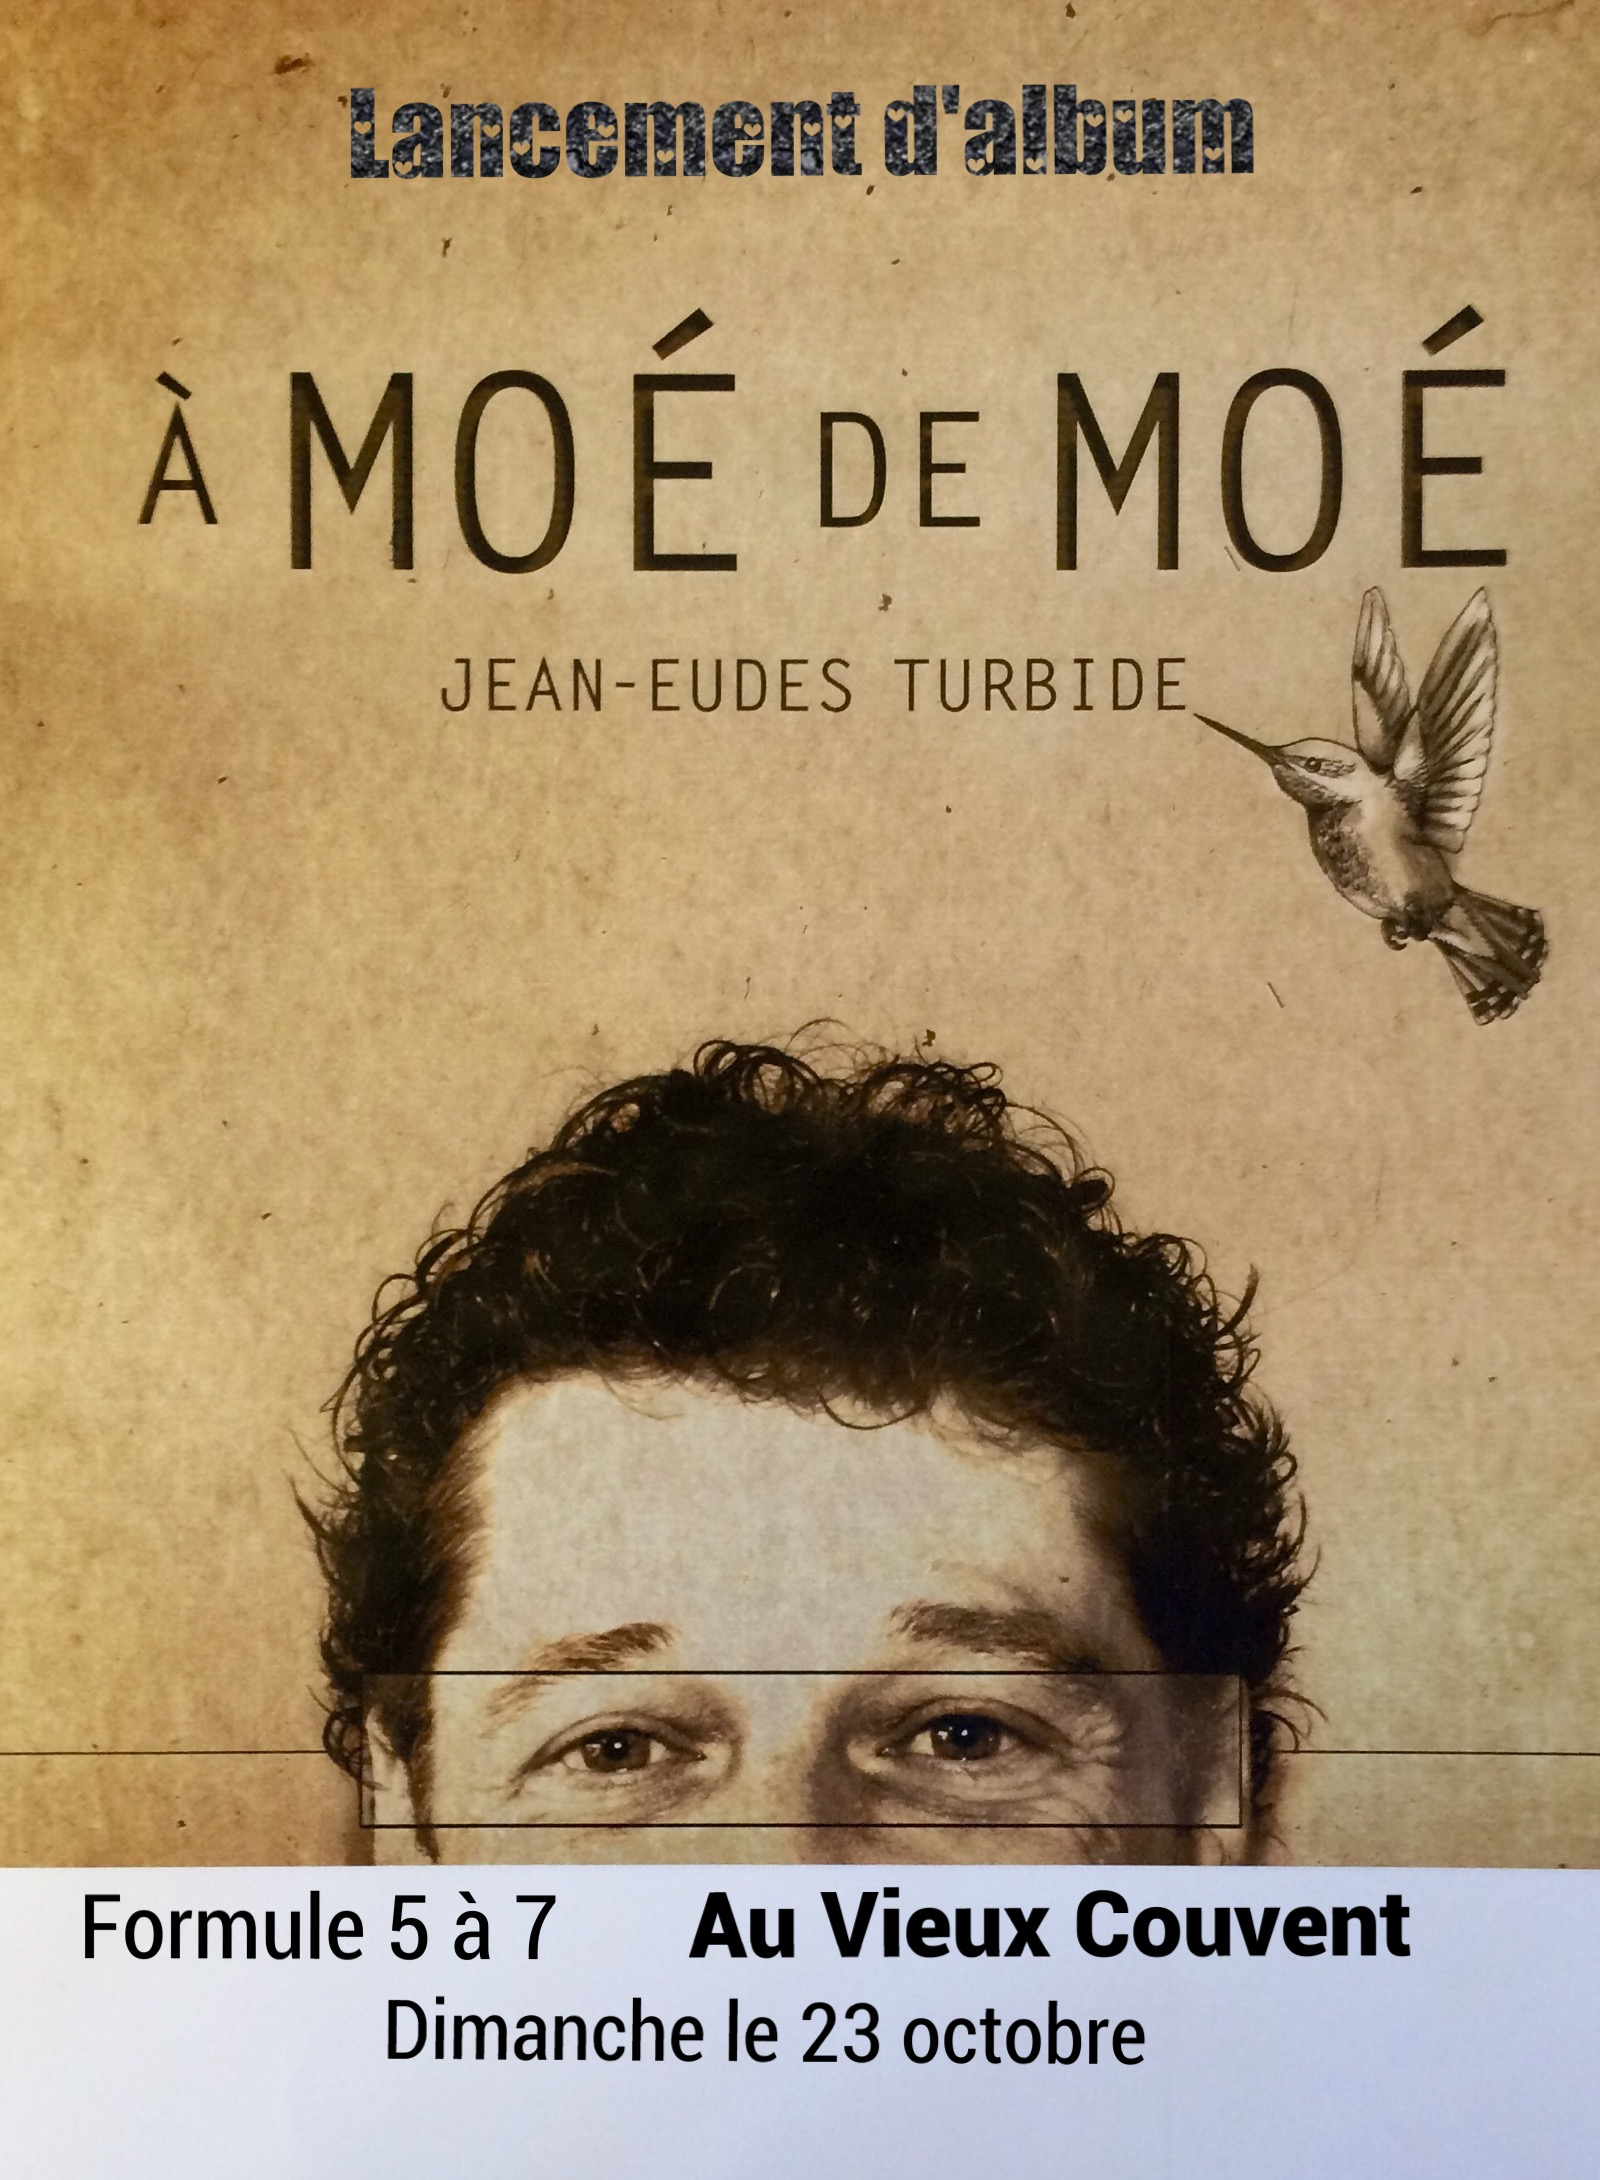 Lancement d'album Jean-Eudes Thurbide